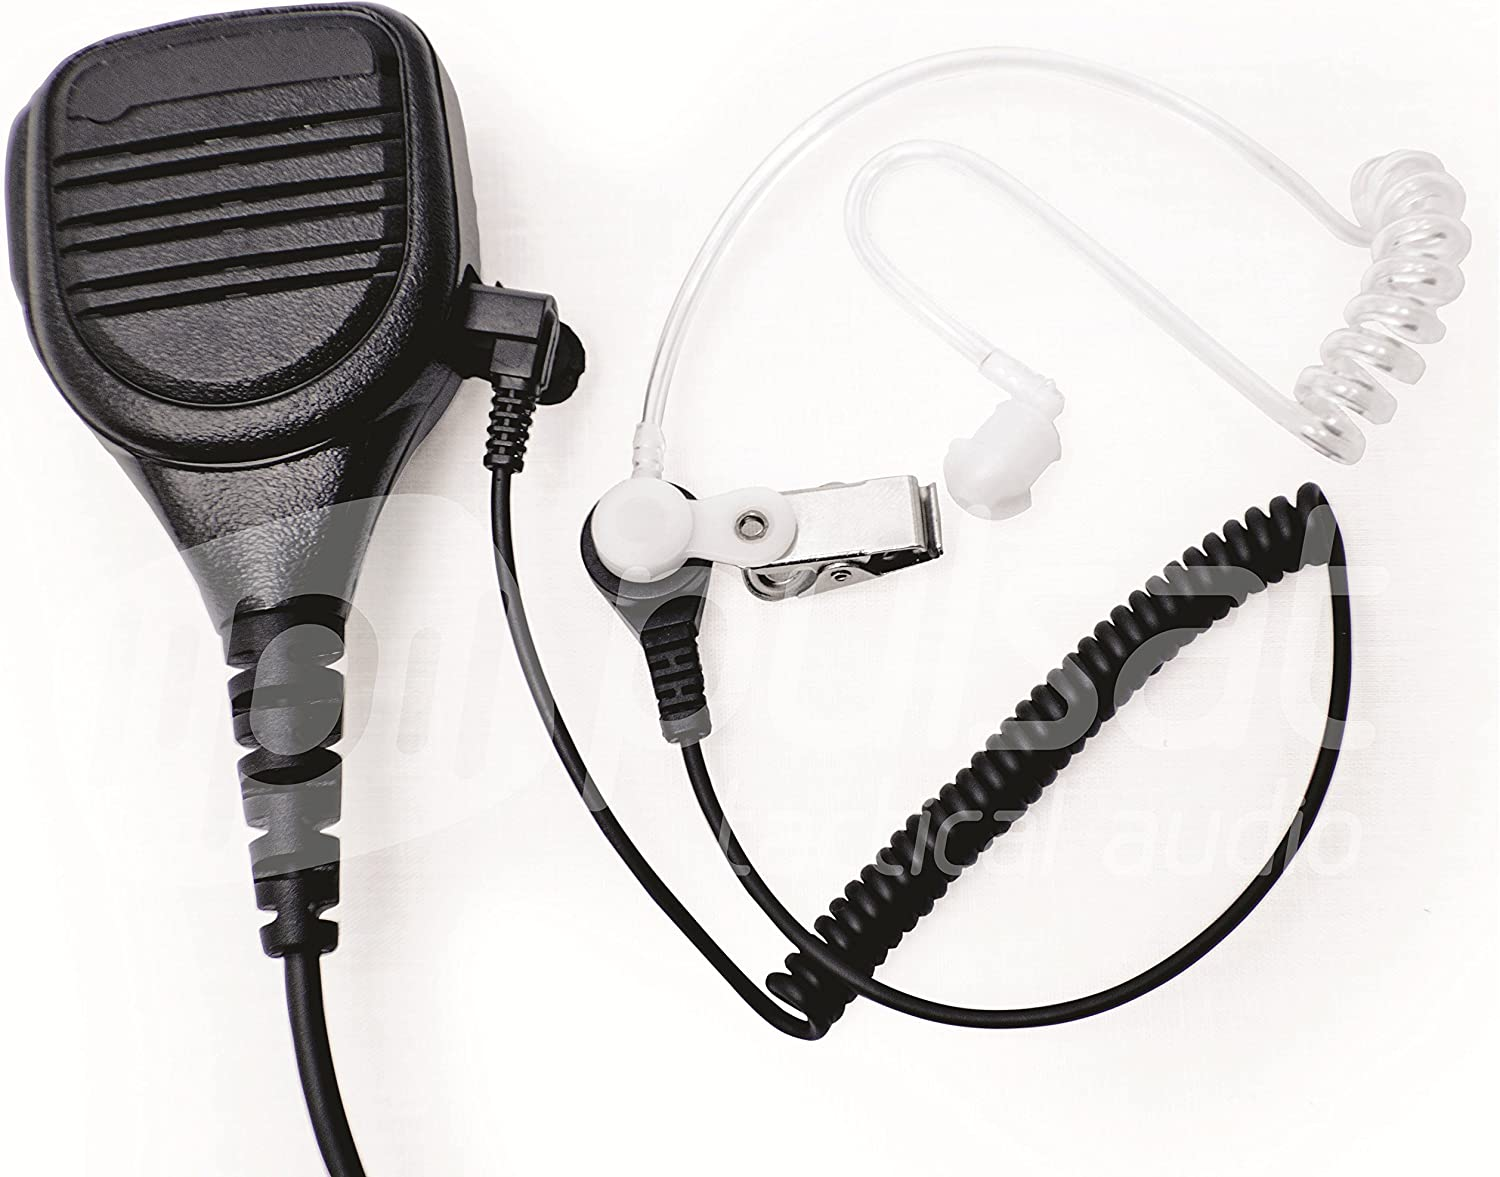 Remote Speaker Microphone For MOTOROLA XPR6500 XPR6550 APX2000 APX3000 Radio